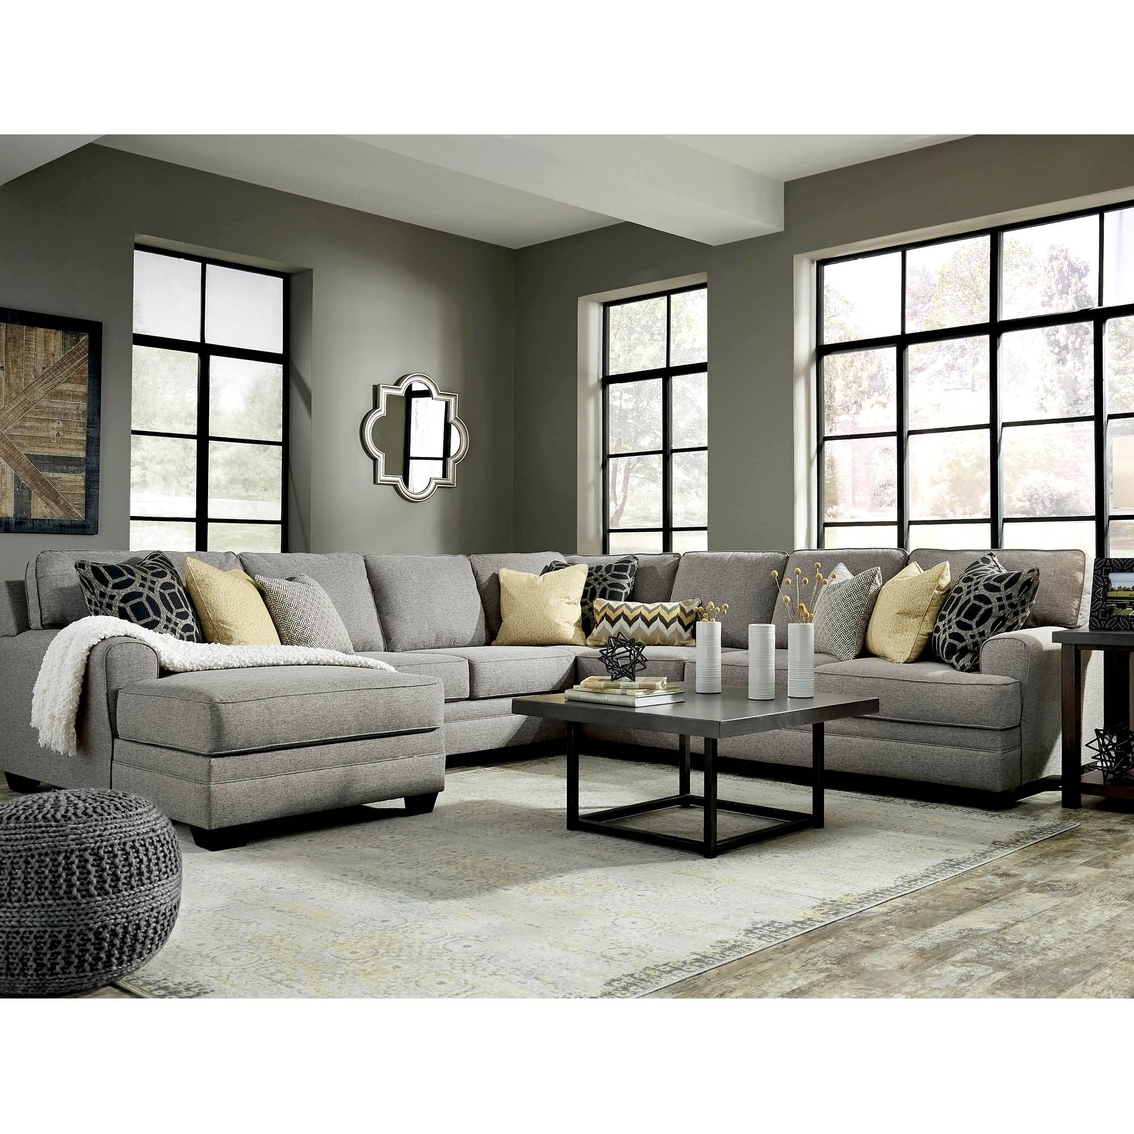 Benchcraft cresson 4 pc. sectional laf corner chaise raf loveseat